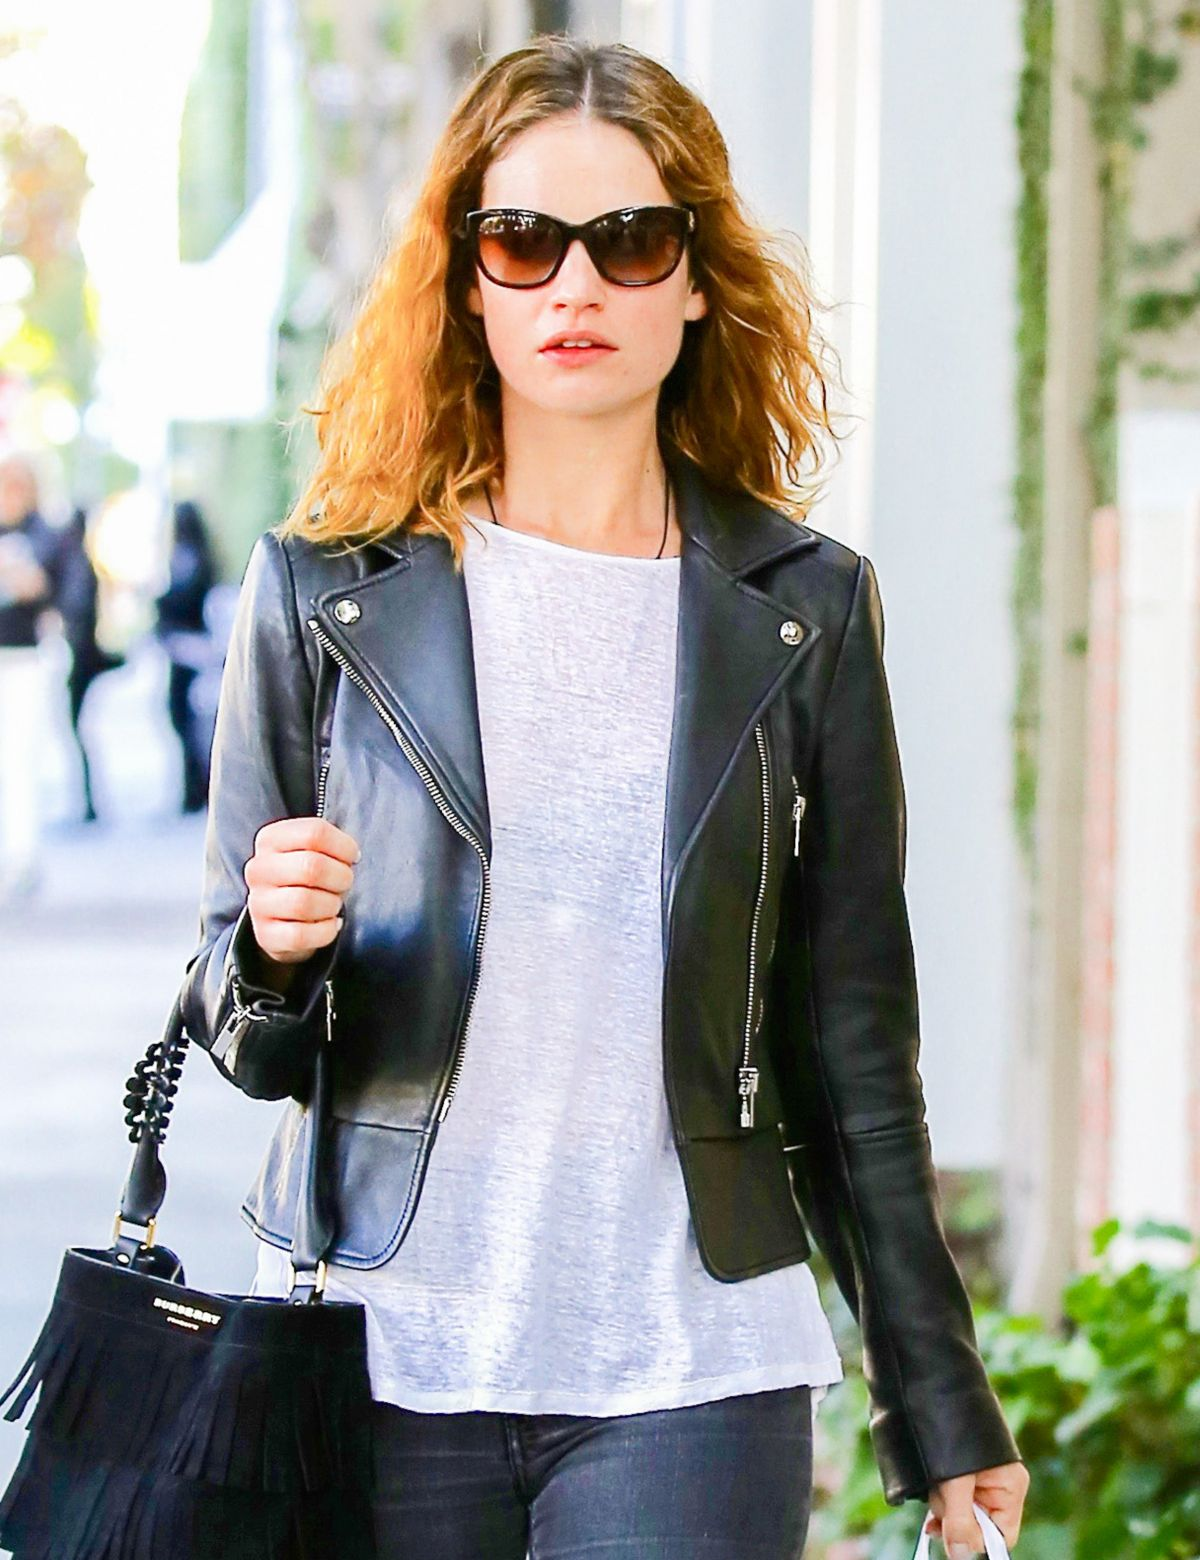 https://www.hawtcelebs.com/wp-content/uploads/2016/01/lily-james-out-shopping-in-los-angeles-01-08-2016_1.jpg